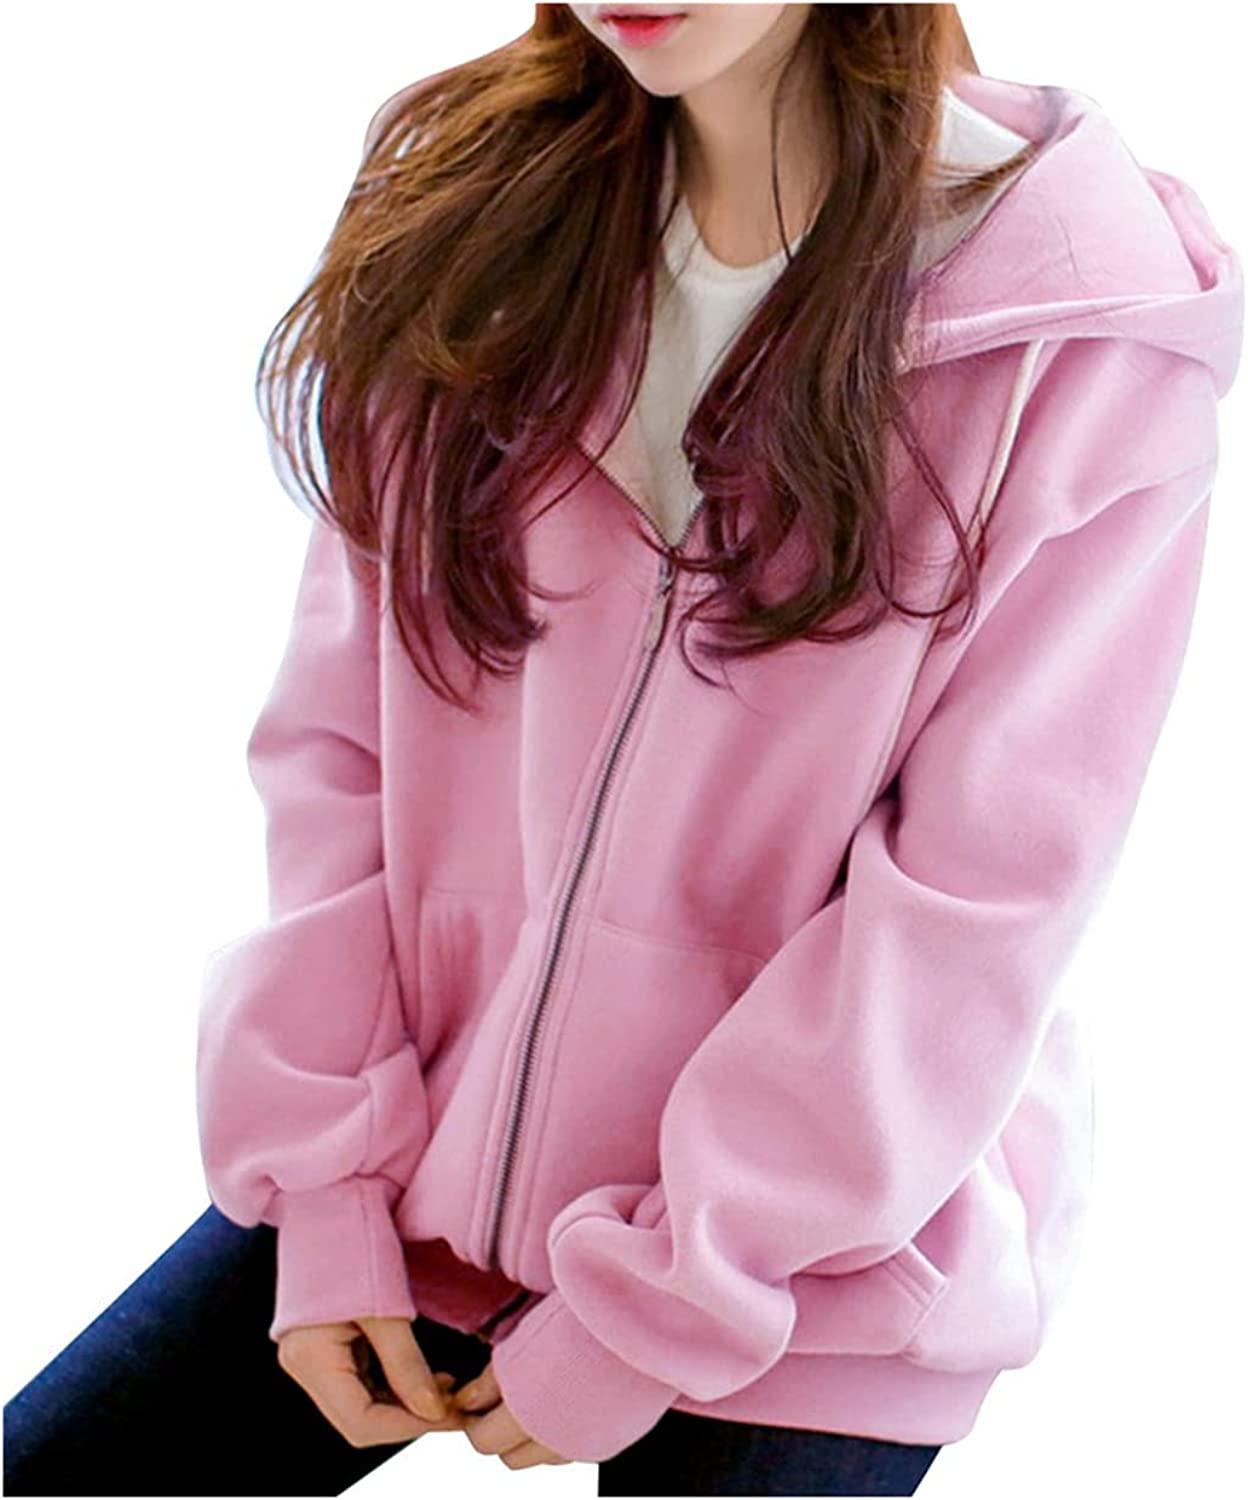 Nyybw Women's Comfortable Soft Sweatshirts Casual Lightweight Active Thin Zip-Up Hoodie Jacket Coat with Two Pockets